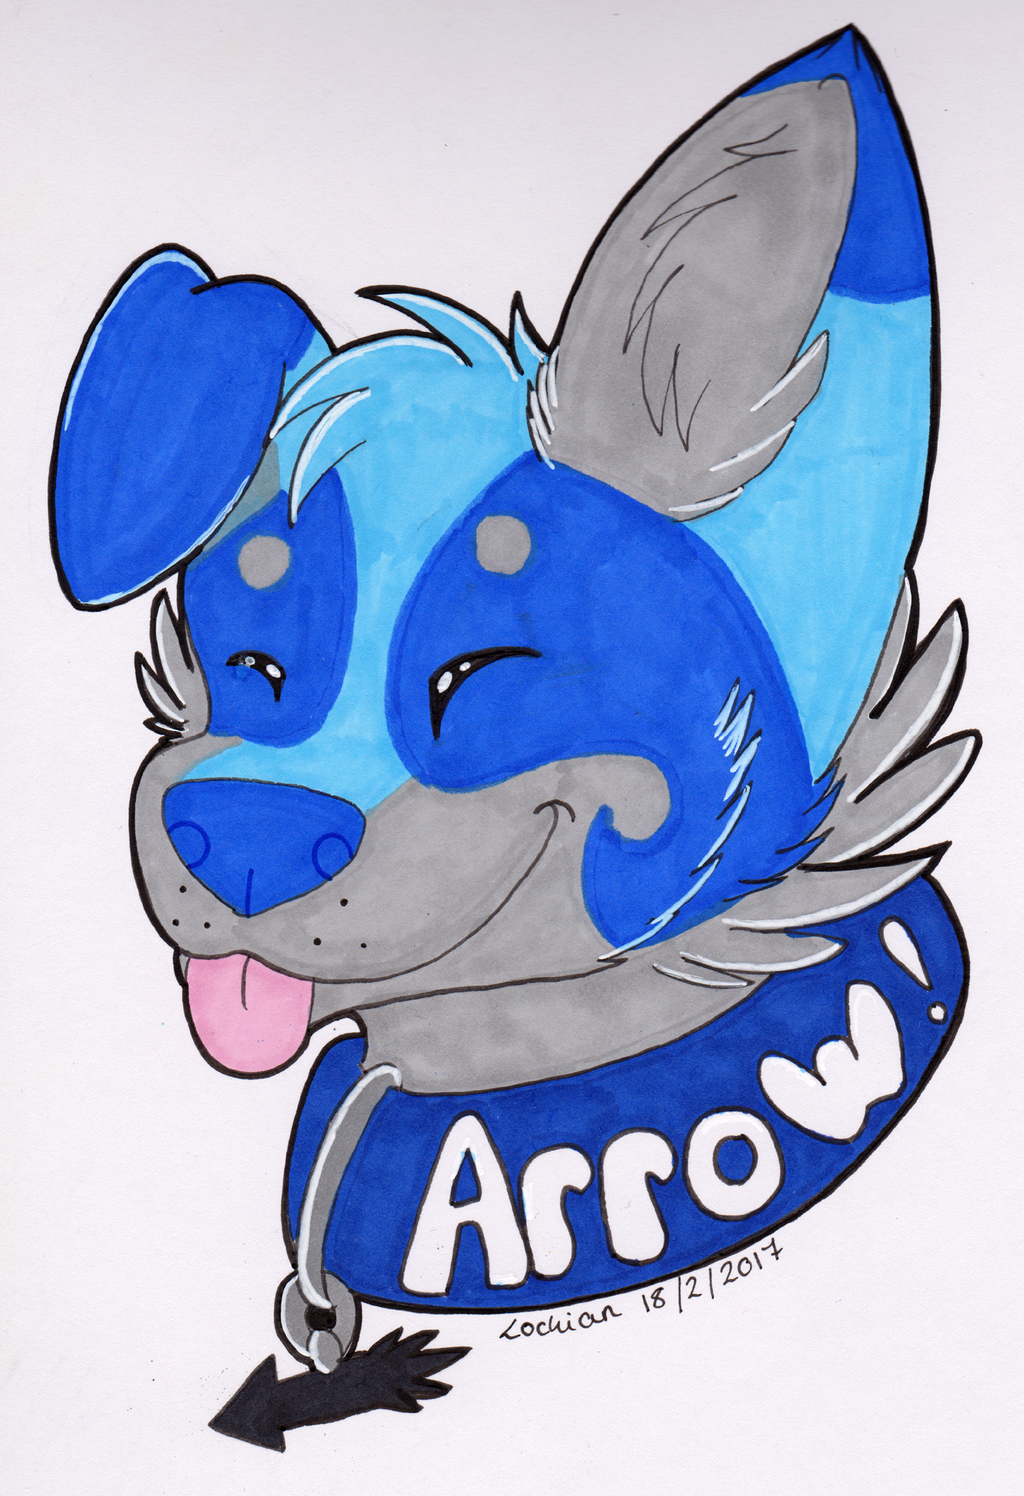 Gift for Arrow / WestsCreations